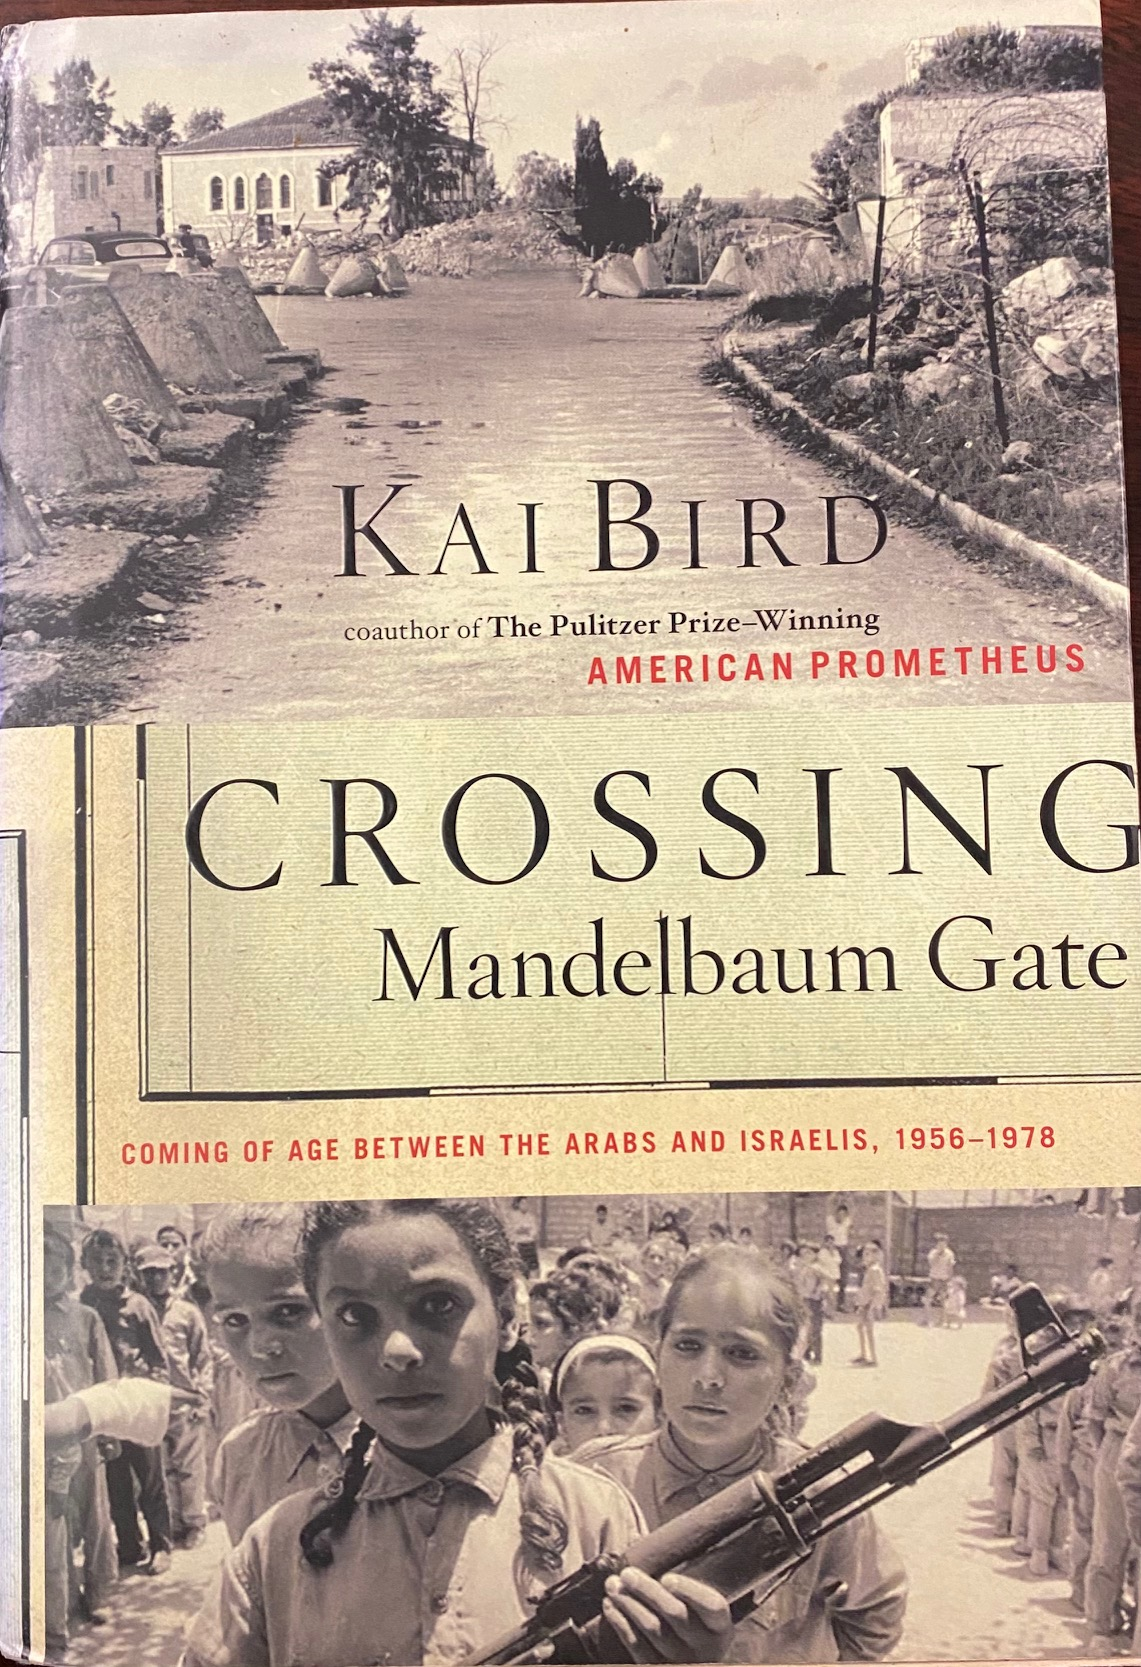 Image for Crossing Mandelbaum Gate: Coming of Age Between the Arabs and Israelis, 1956-1978